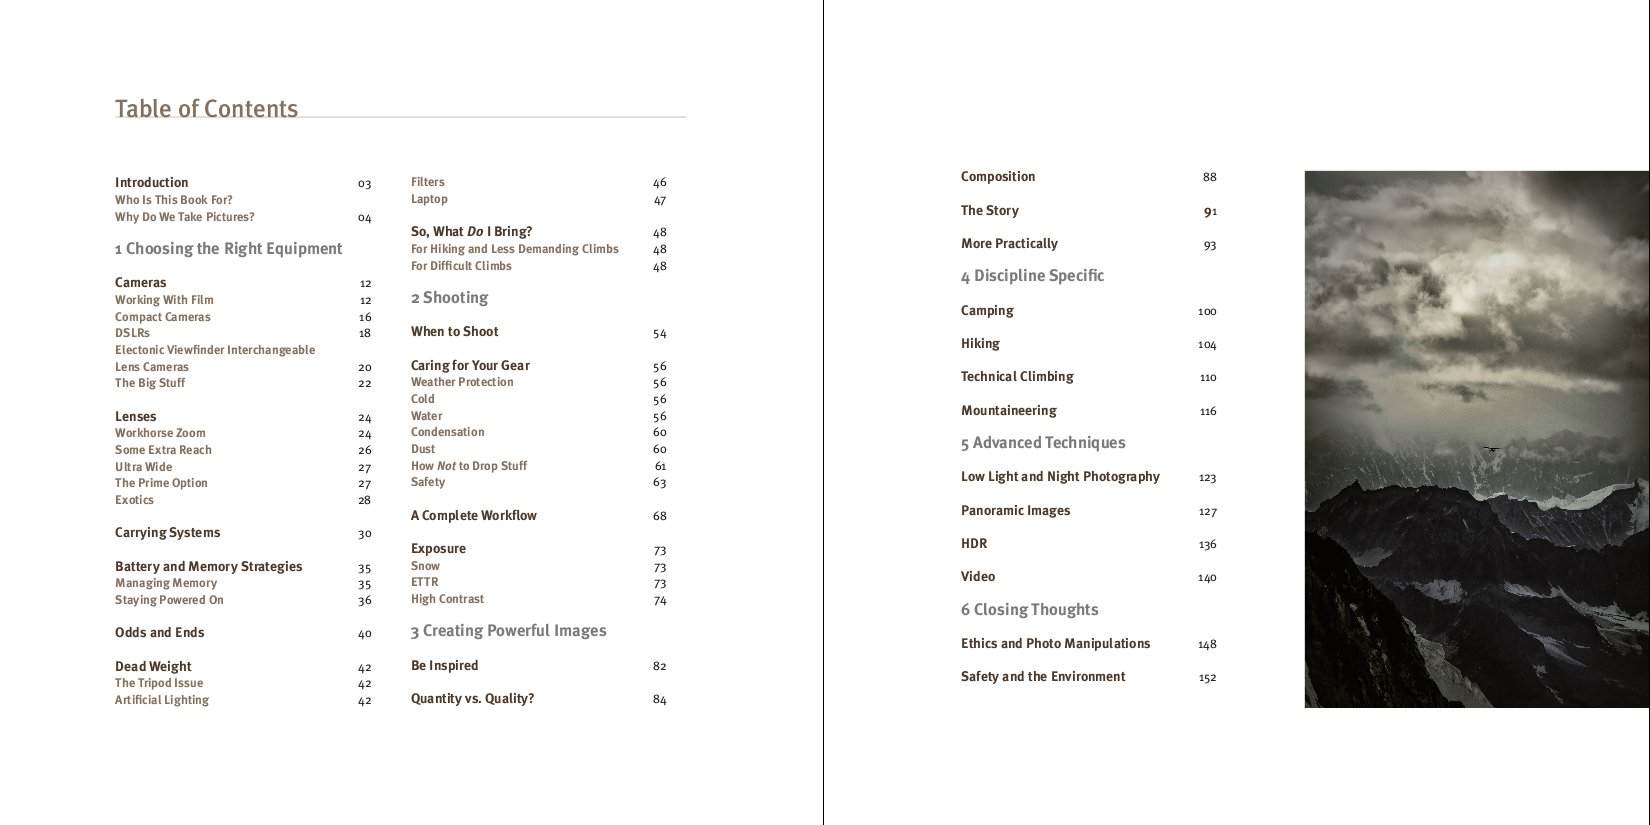 Table of Contents of Remote Exposure, 103 kb